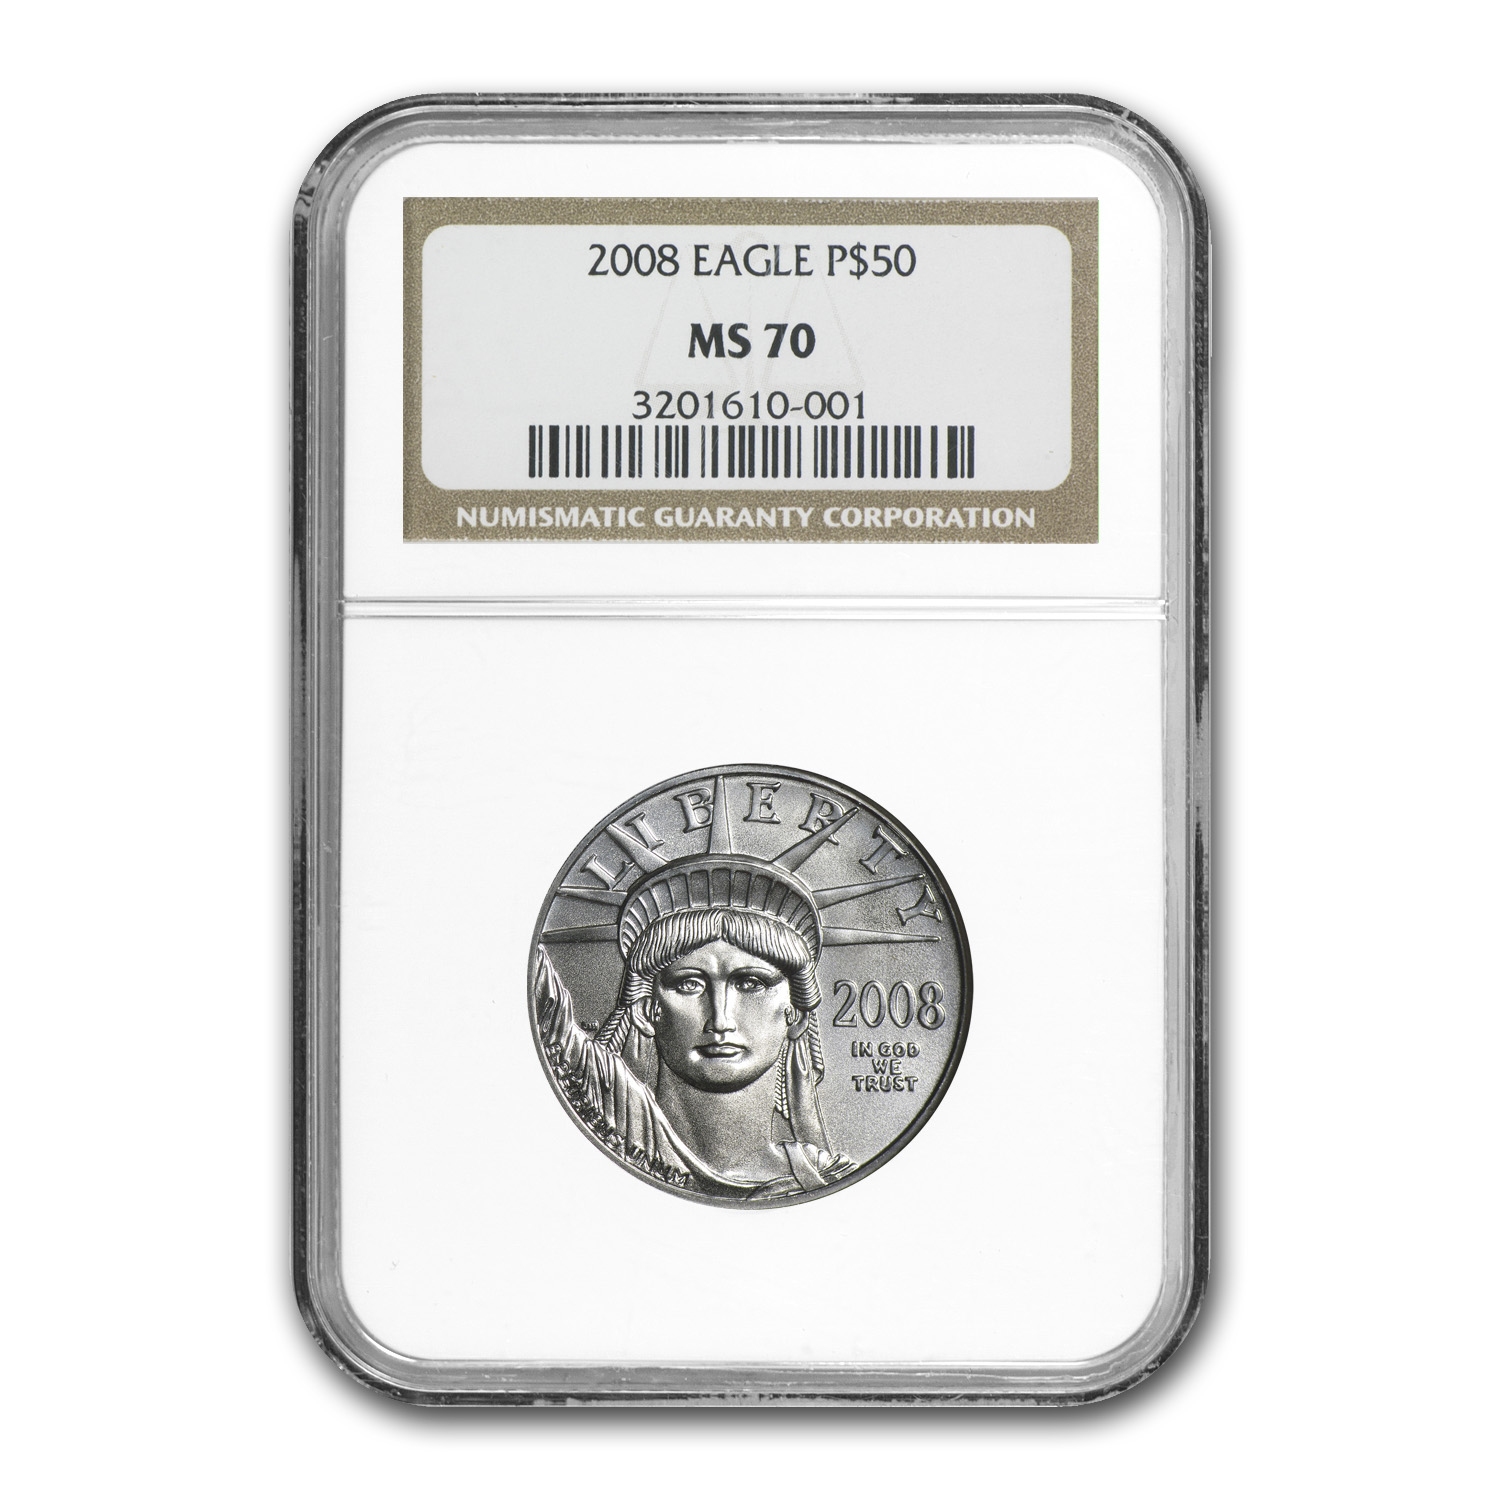 2008 4-Coin Platinum Eagle Set MS-70 NGC